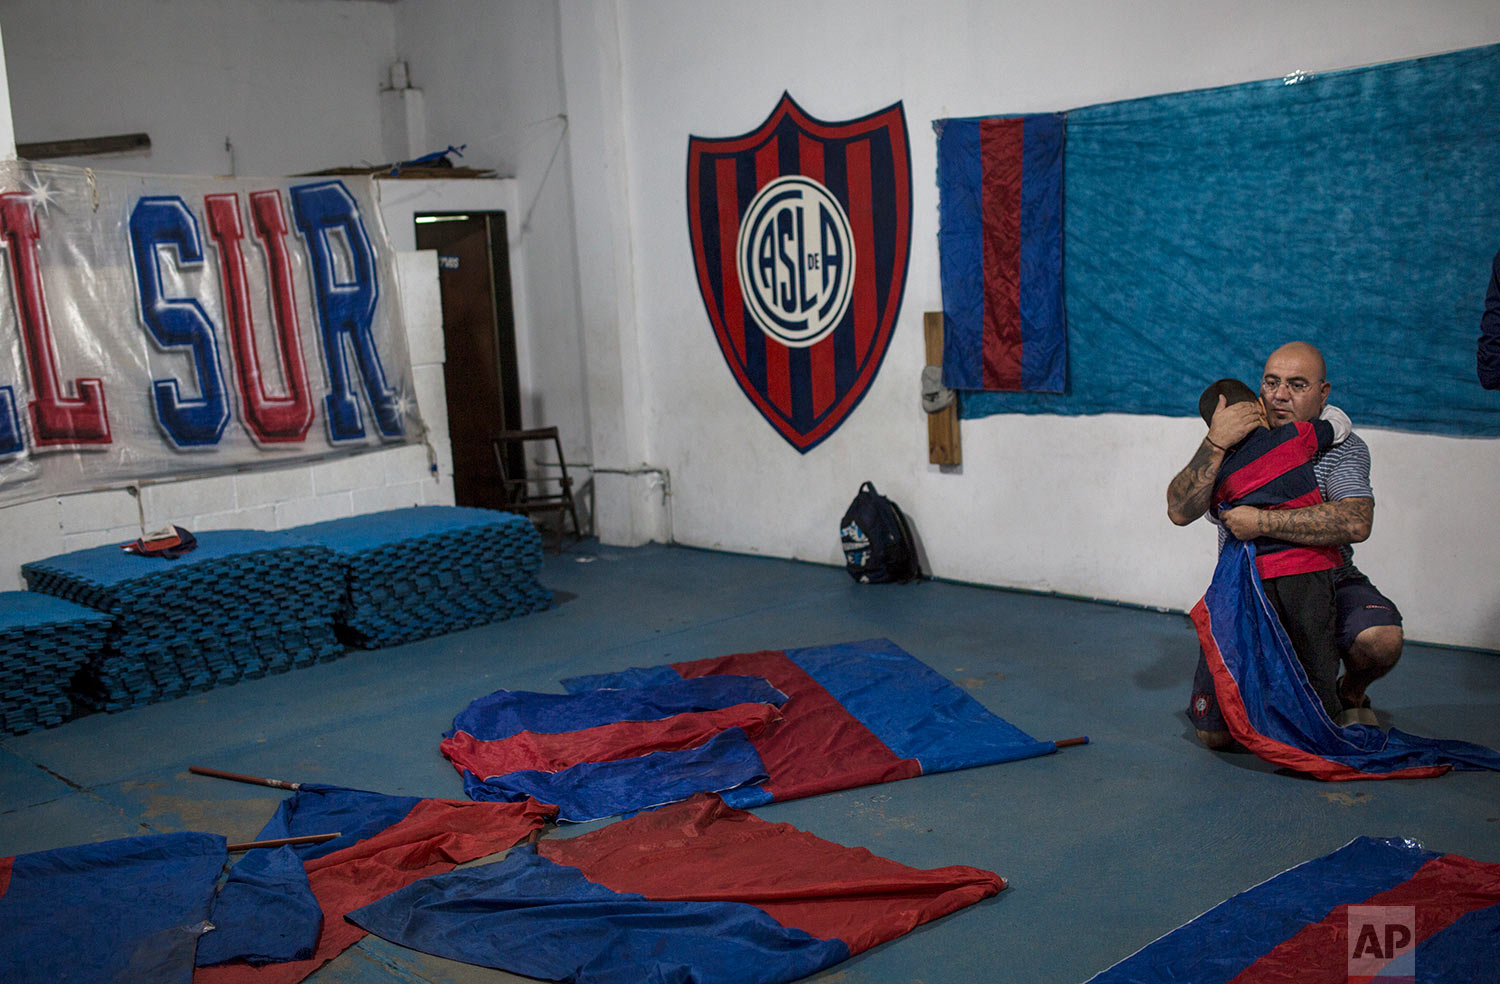 """In this April 29, 2018 photo, Fernando Mendez embraces his 4-year-old son Ilario during preparations by San Lorenzo soccer fans who call their group """"Los Cuervos del Sur"""" to watch their team play rival team Patronato on a giant screen in Buenos Aires, Argentina. (AP Photo/Rodrigo Abd)"""